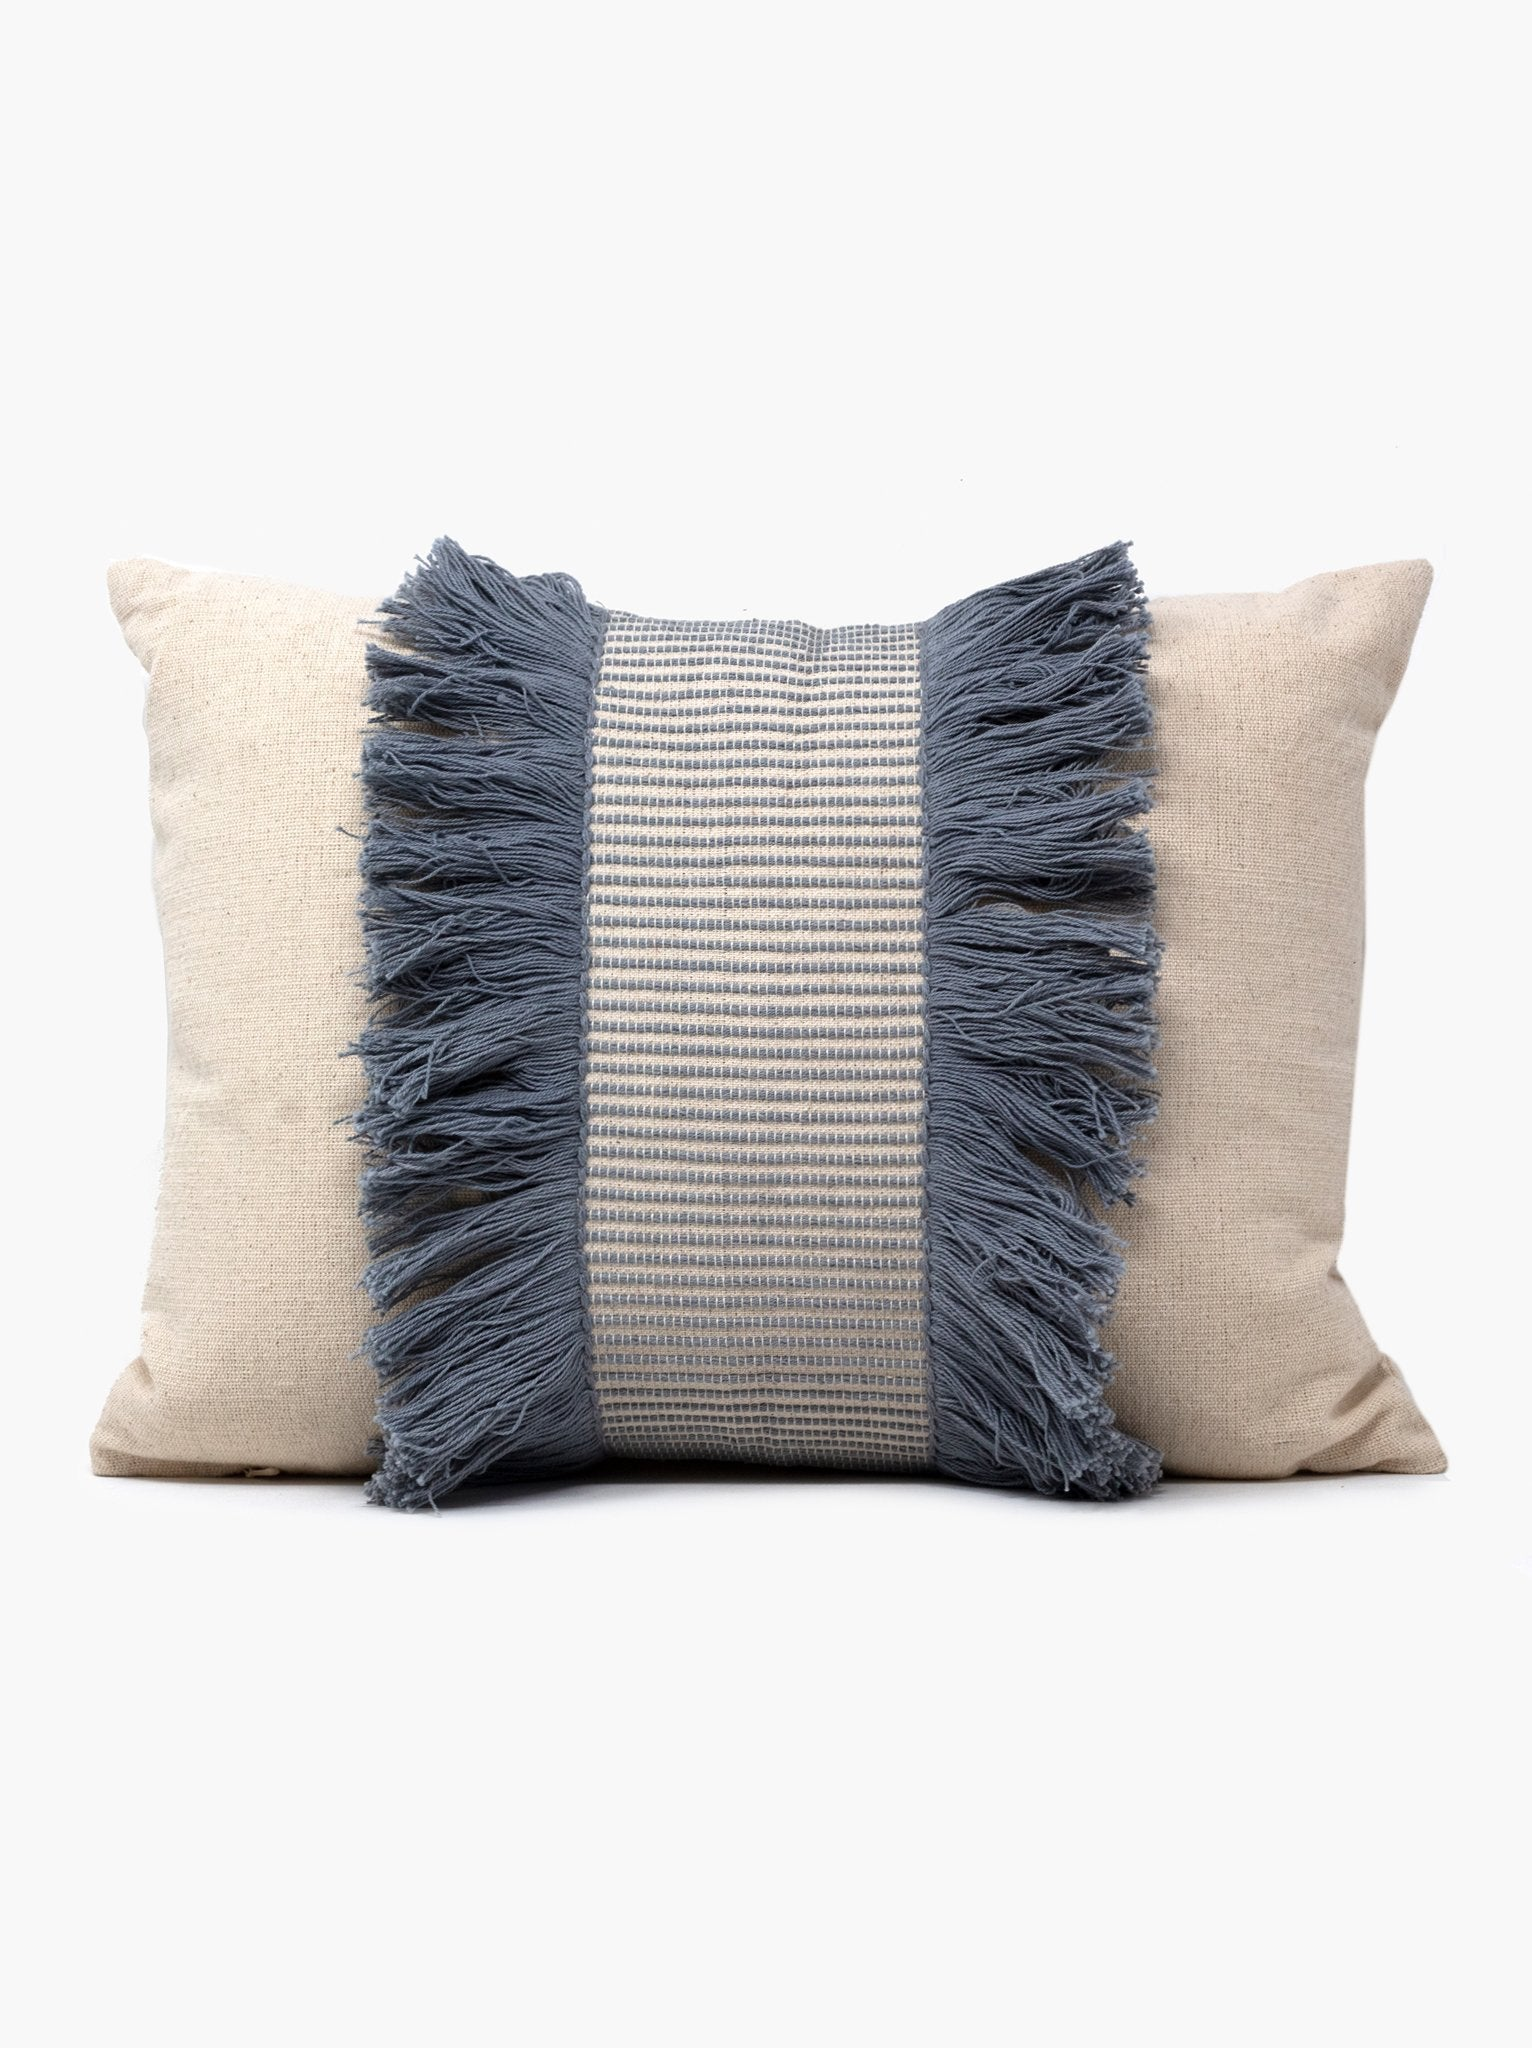 Saraswati Threadbare Pillow